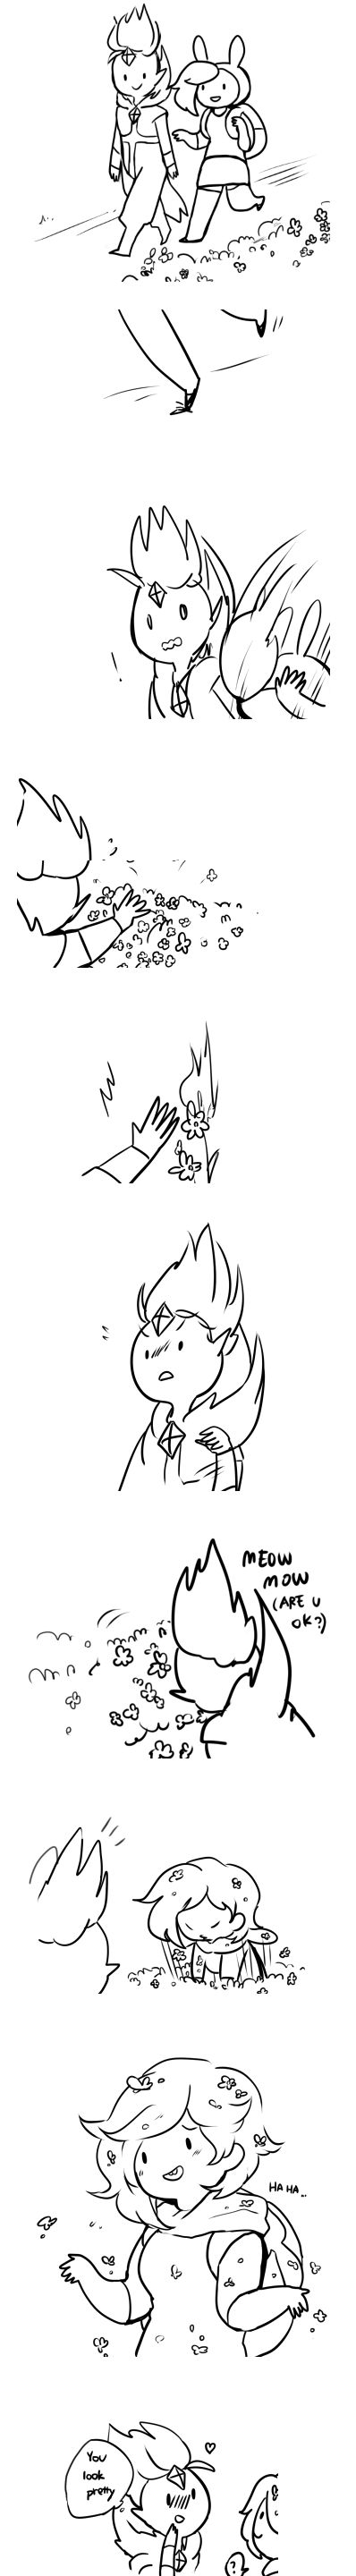 short fionna and flame prince comic by professor torchy